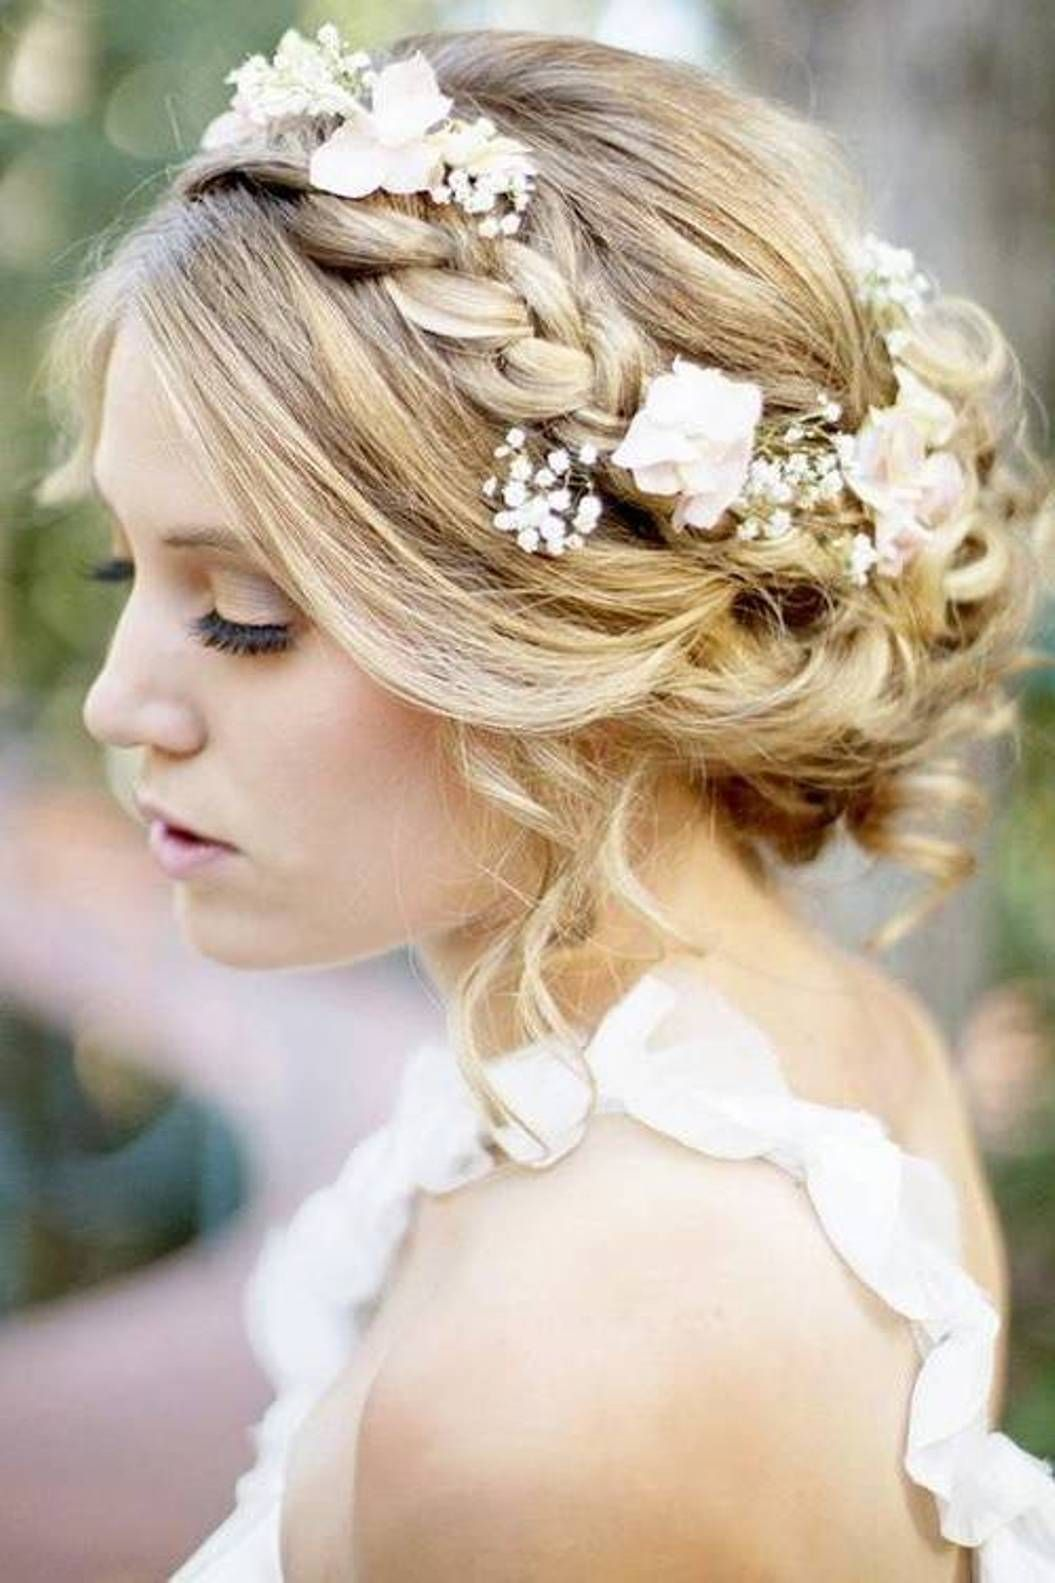 Tremendous 1000 Images About Wedding Hair On Pinterest Updo Braided Hair Hairstyles For Women Draintrainus